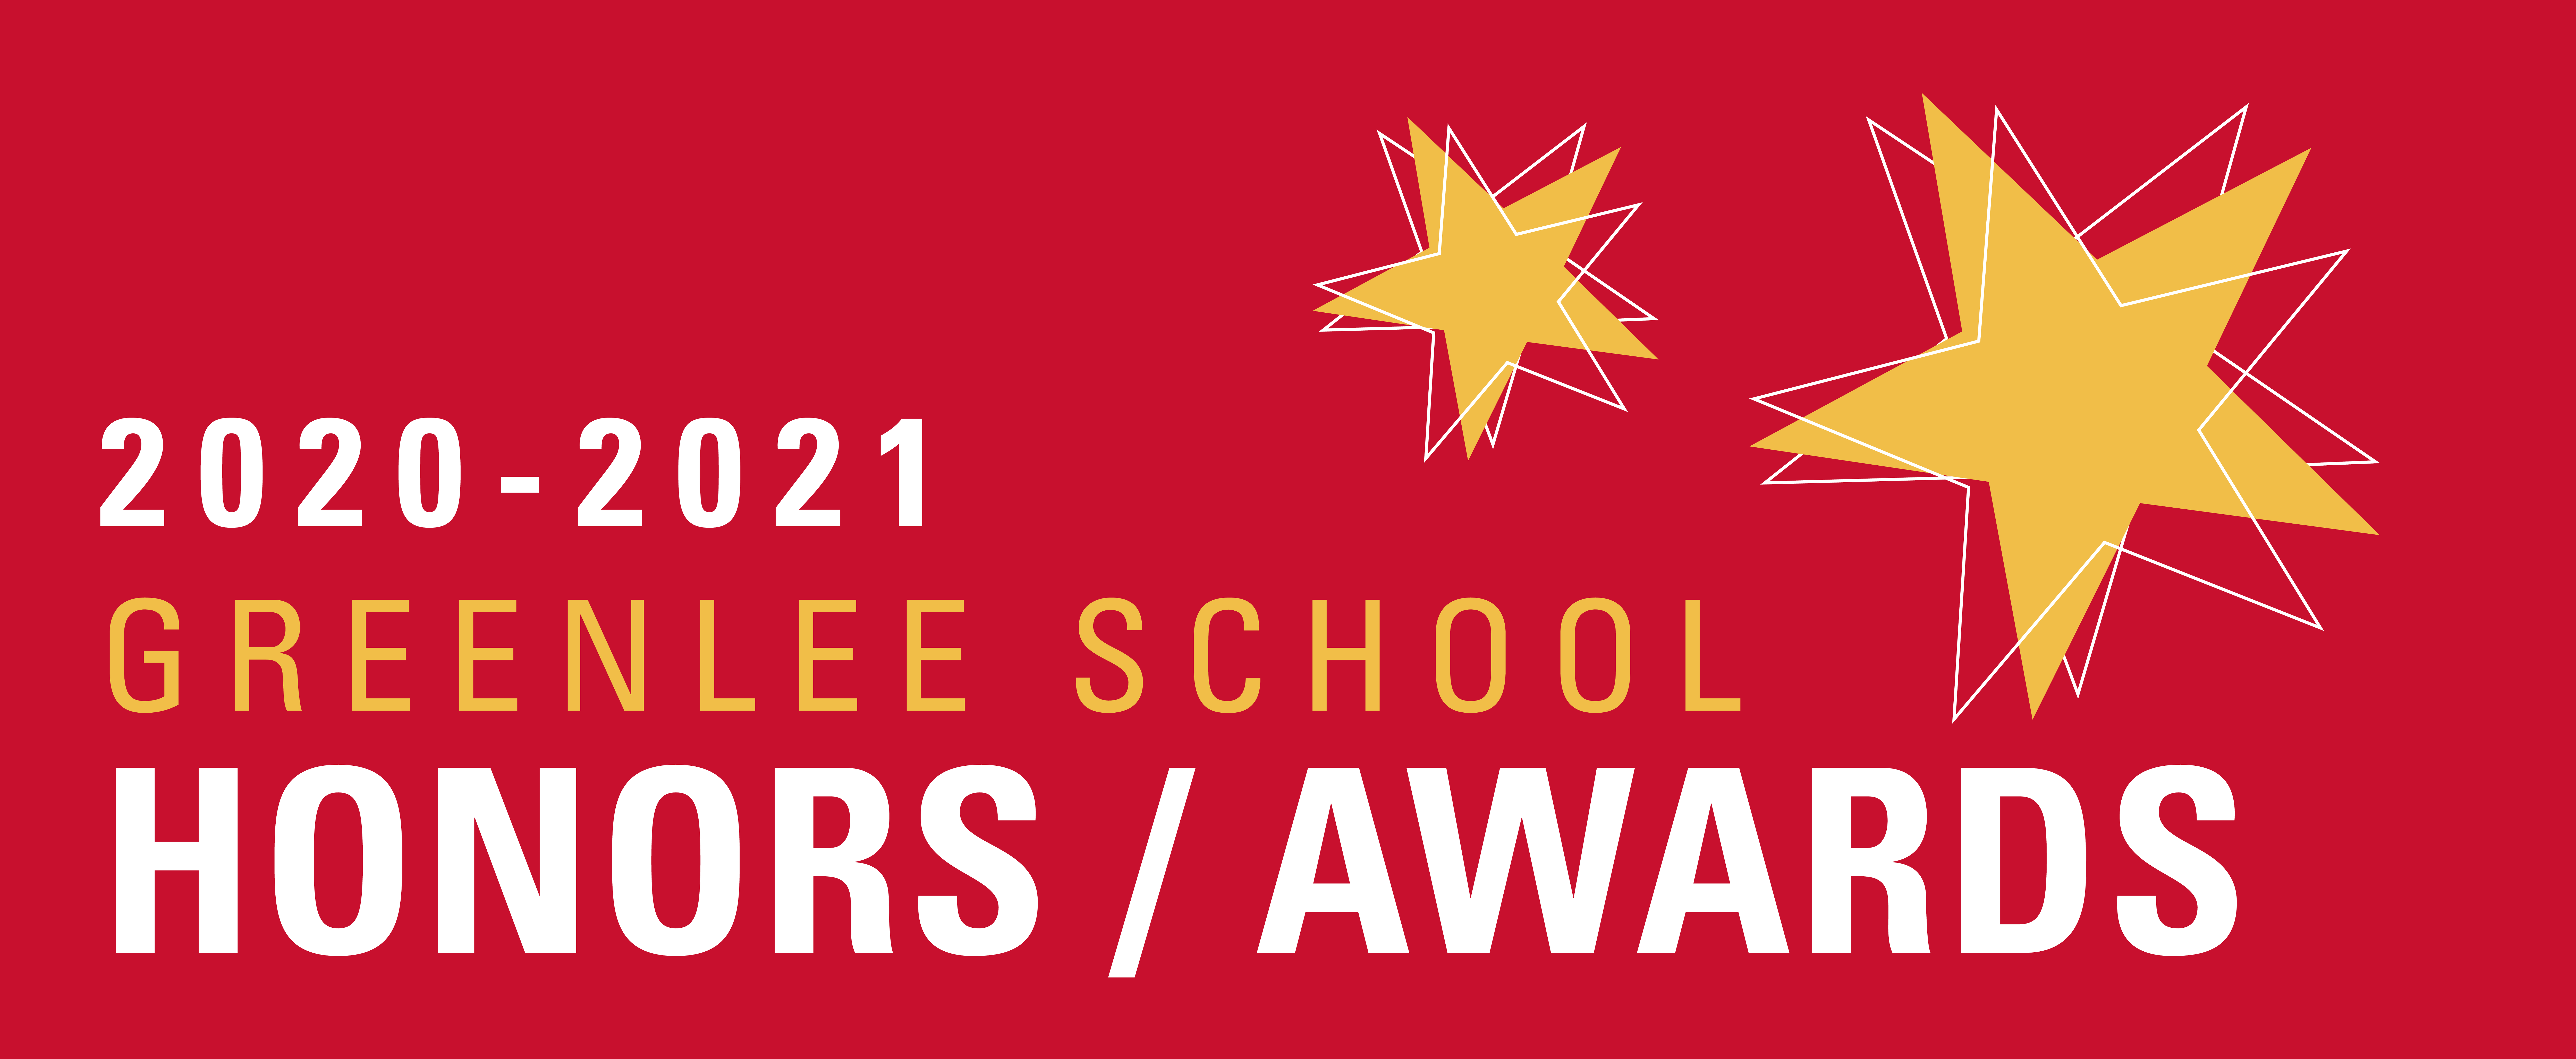 2020-2021 Greenlee School Honors/Awards graphic